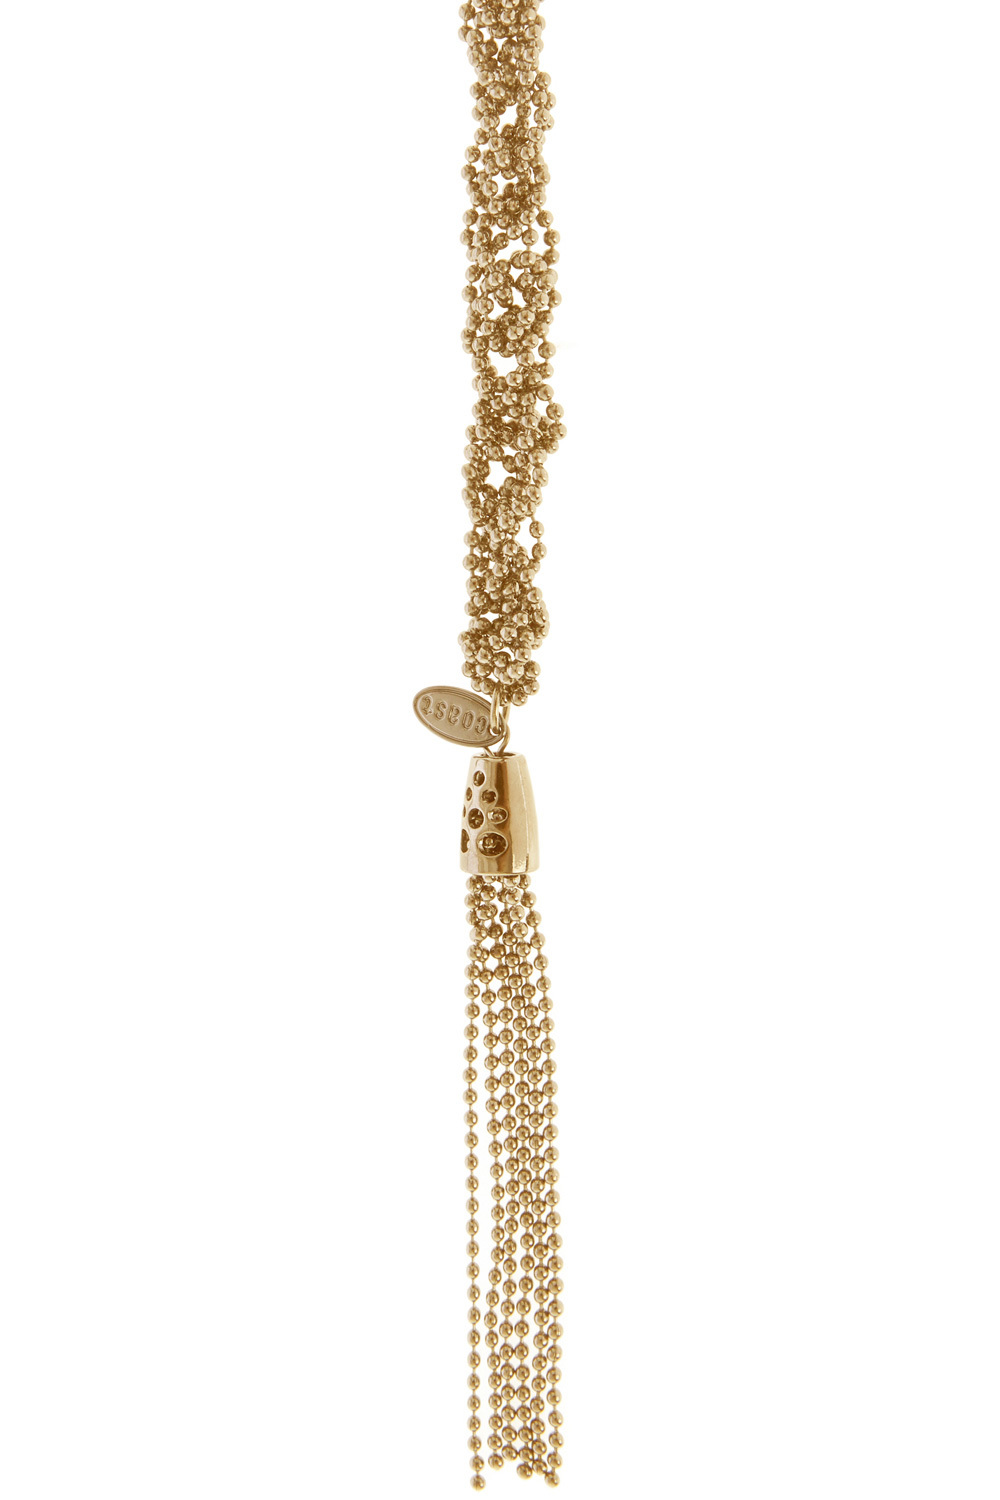 Long Sparkle Chain Necklace - predominant colour: gold; occasions: evening; style: pendant; length: long; size: standard; material: chain/metal; finish: metallic; embellishment: chain/metal; season: a/w 2015; wardrobe: event